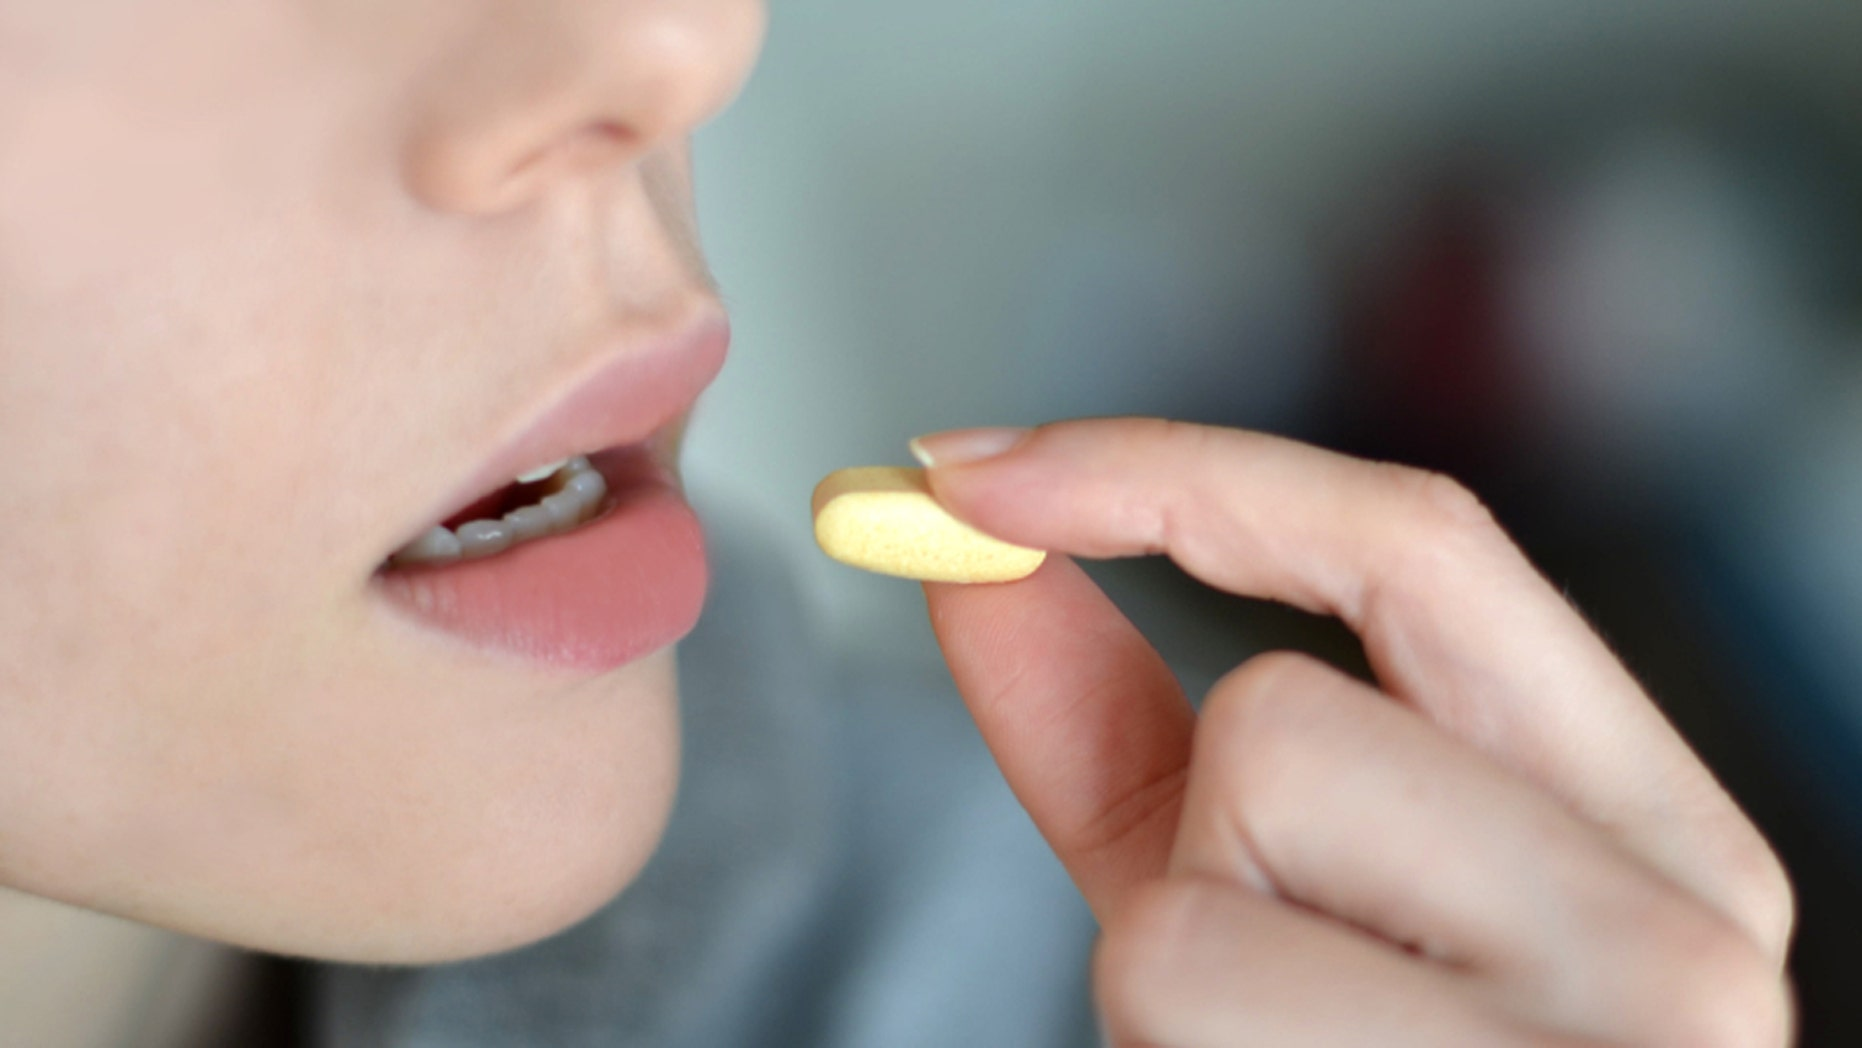 Popping pills that aren't prescribed to you can be dangerous-- especially while traveling.